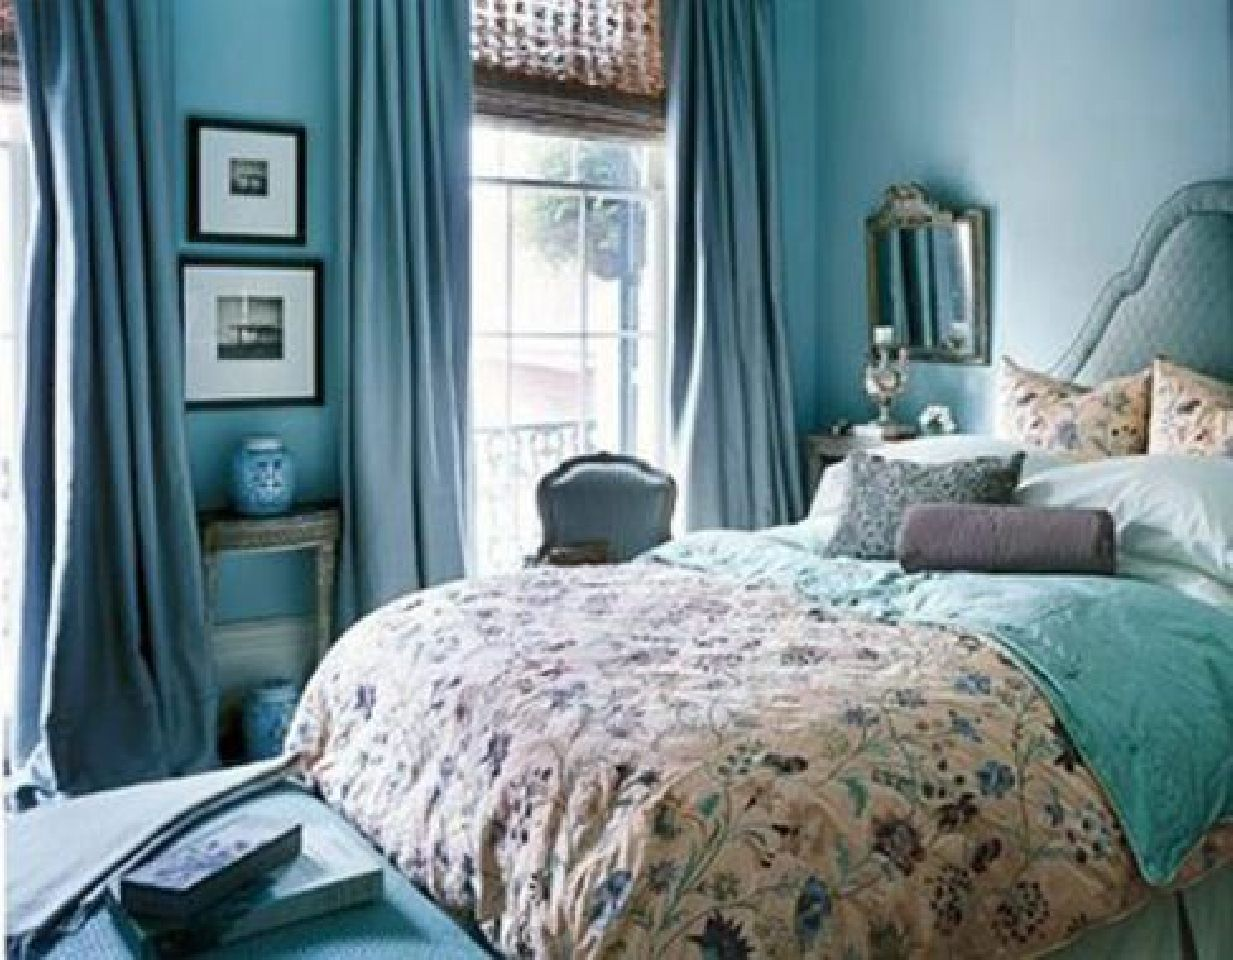 interior design ideas bedroom blue 1000 images about bedroom ideas on pinterest bedrooms blue and - Bedroom Design Blue